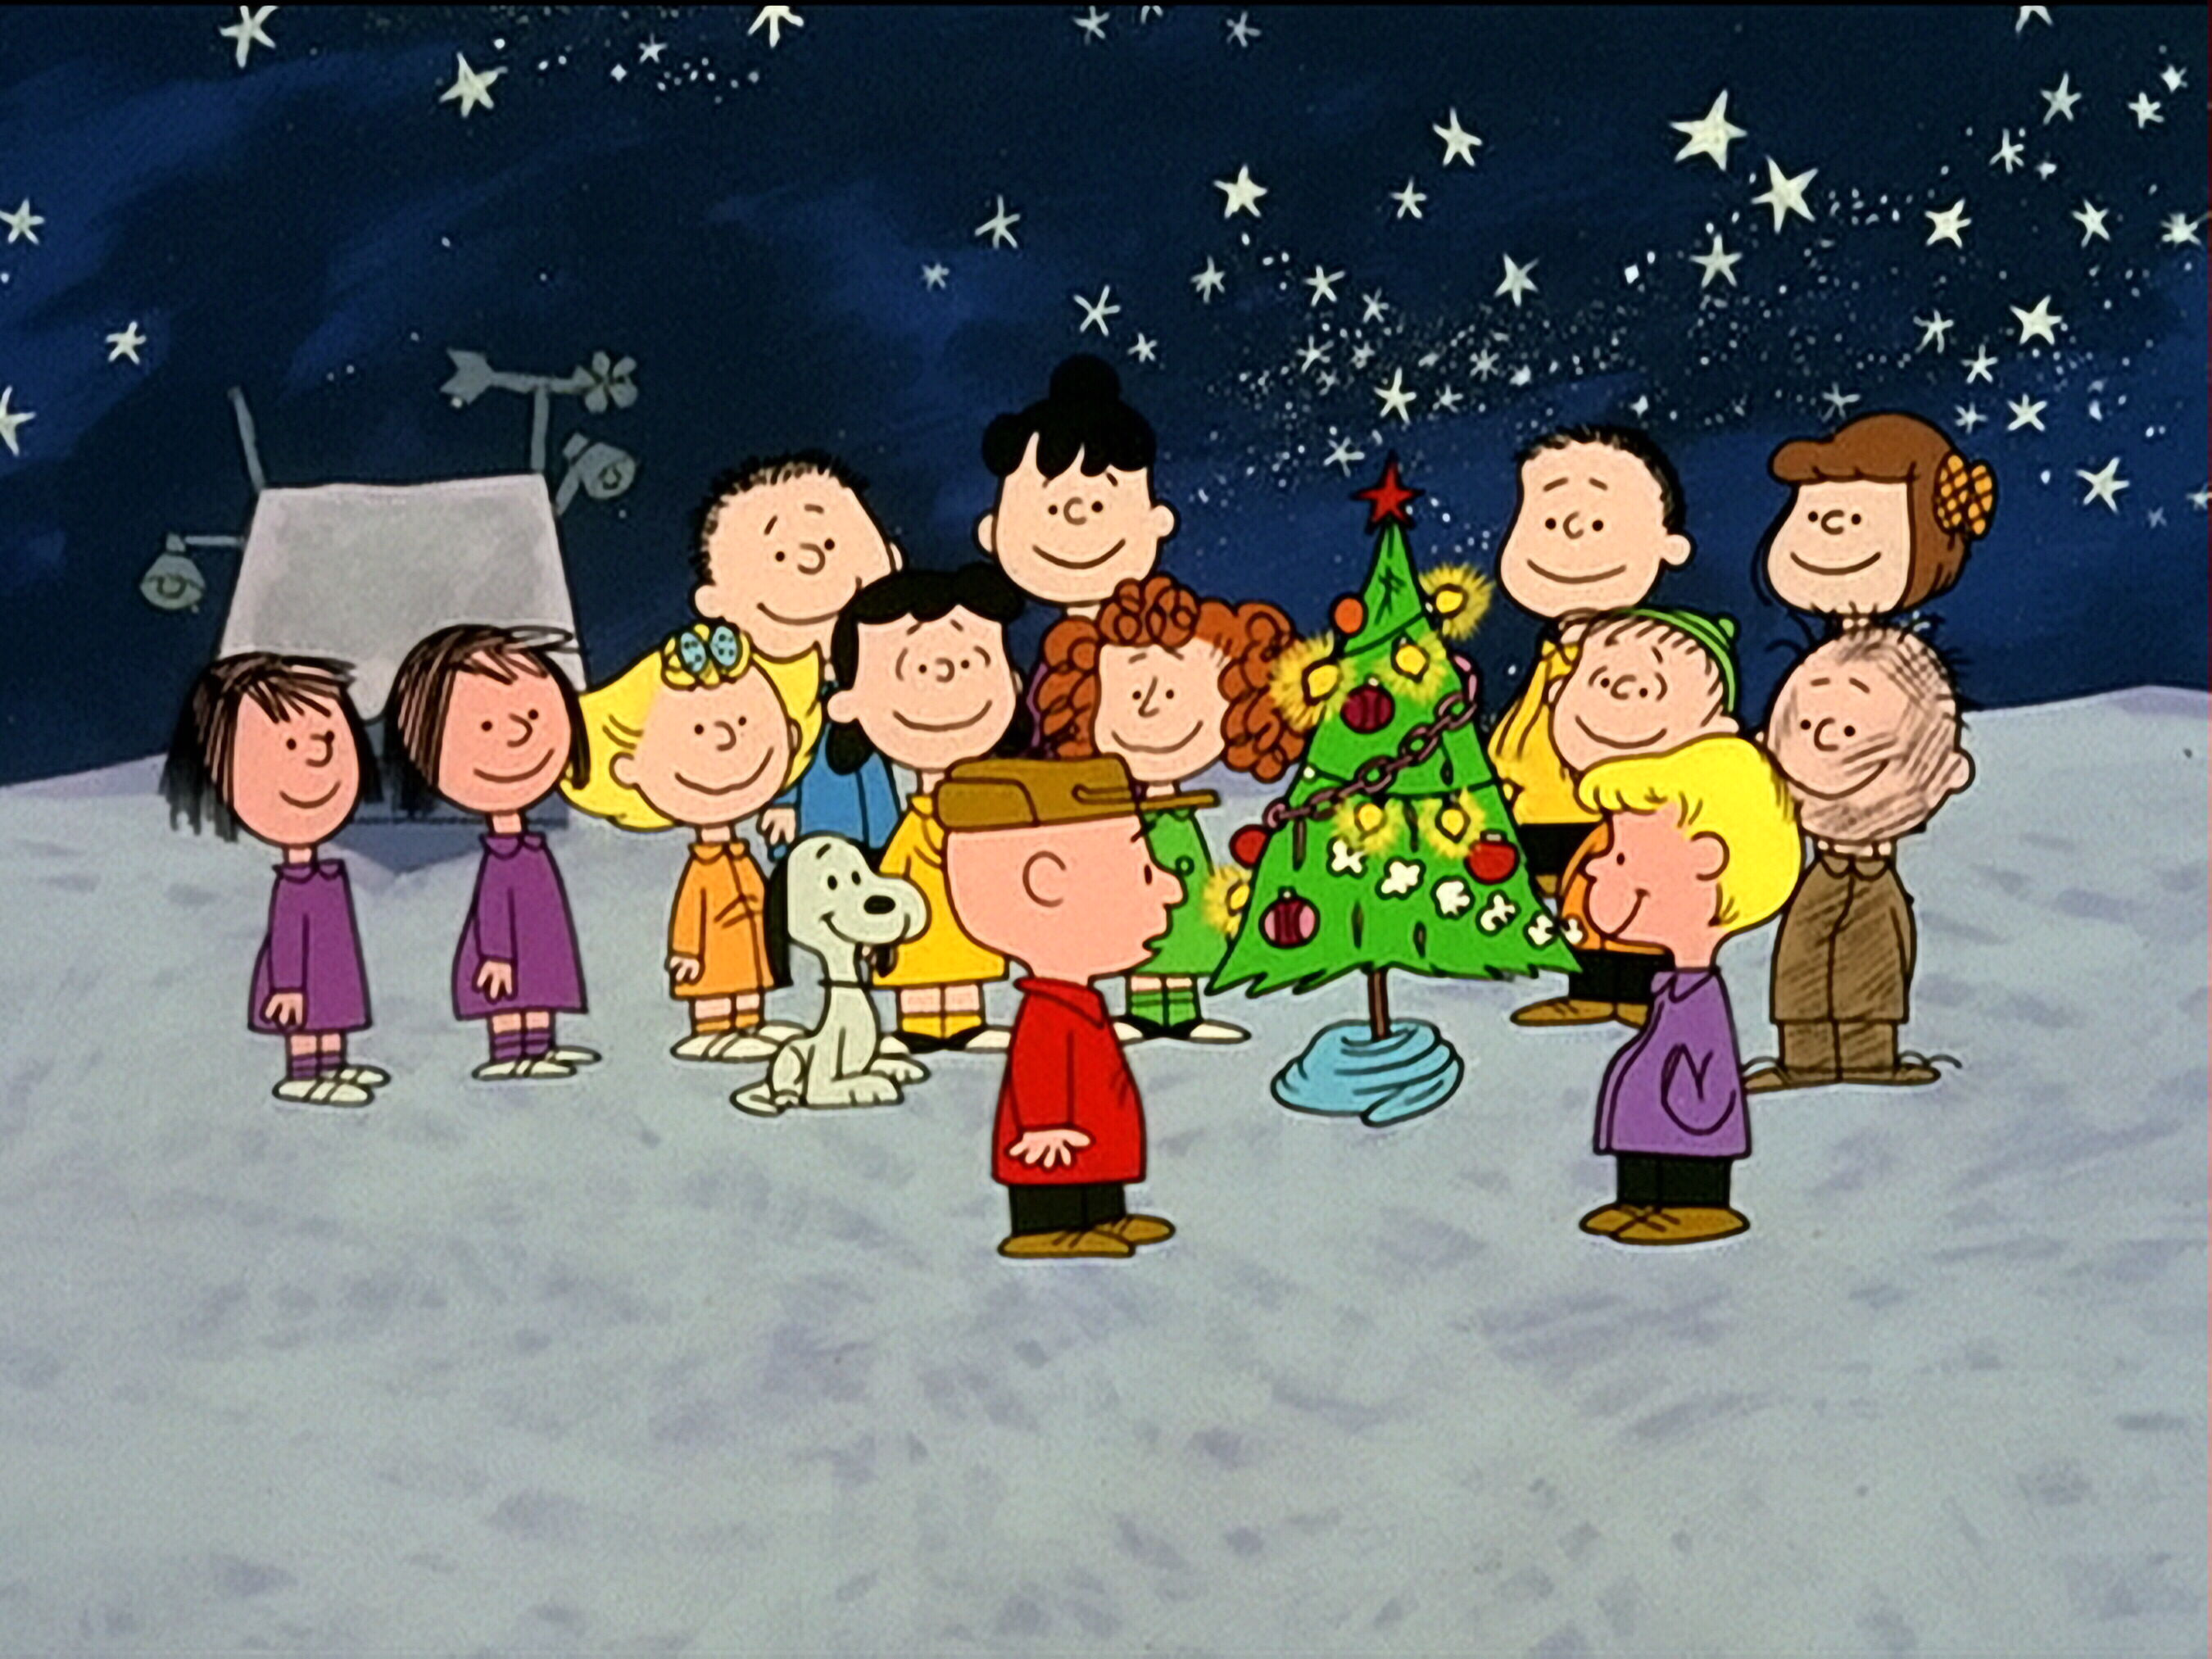 Christmas Charlie Brown Images 2019 , Lovely Pictures